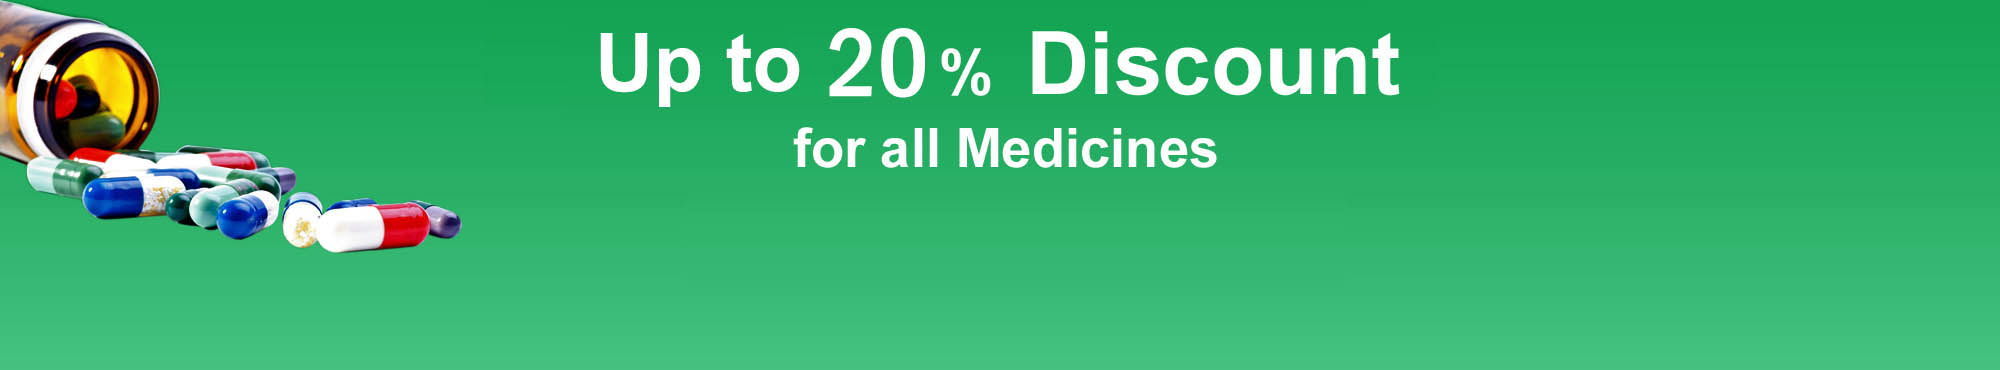 Vpharmacist website banner image